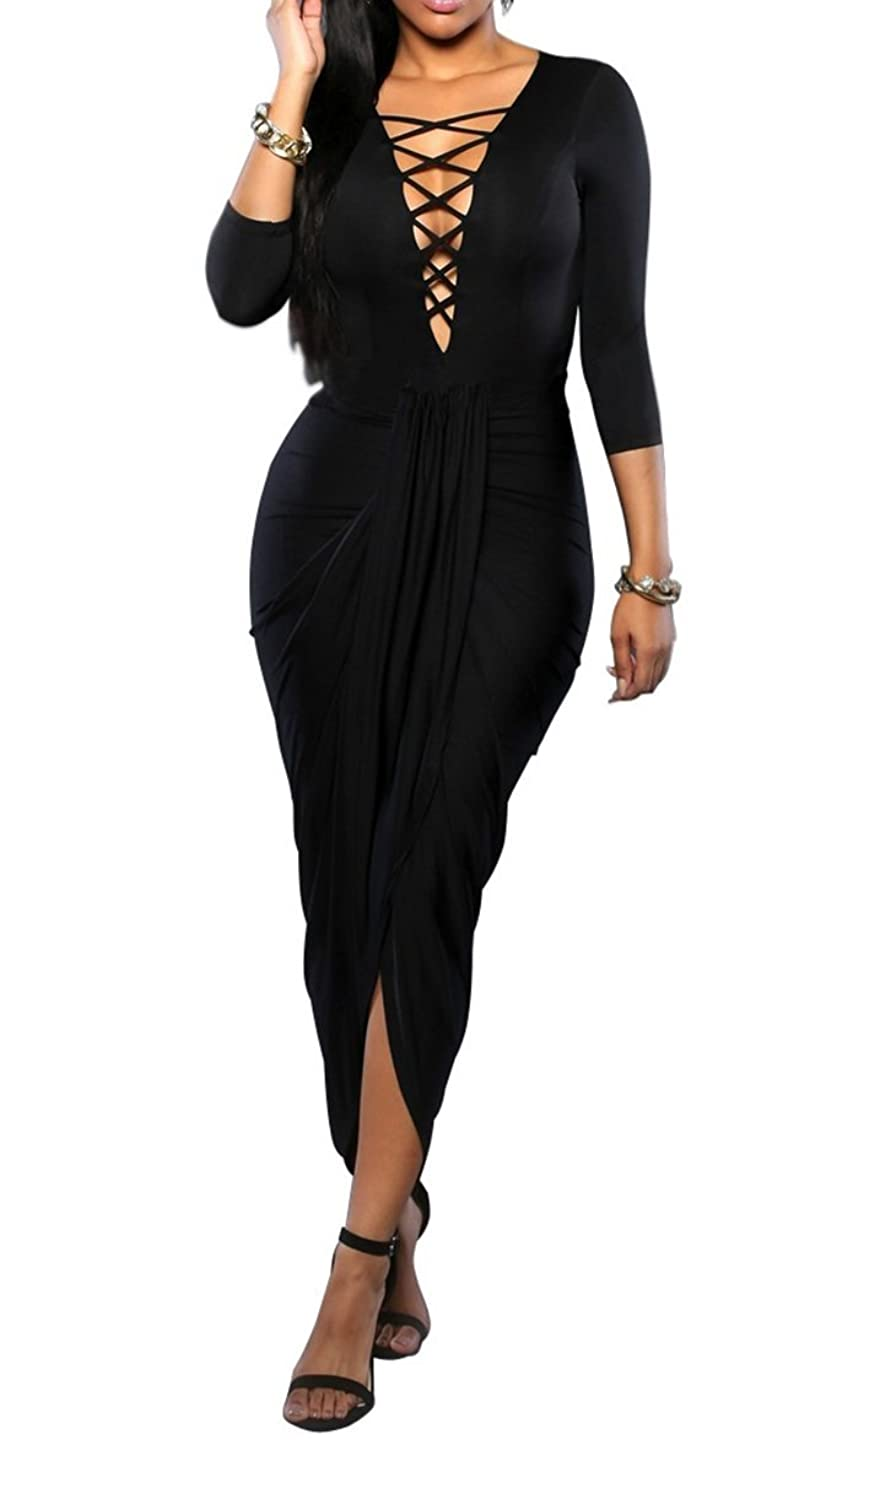 Women Sexy Cut Out Deep V Neck Front Slpit Bandage Ruched Clubwear Maxi Dress